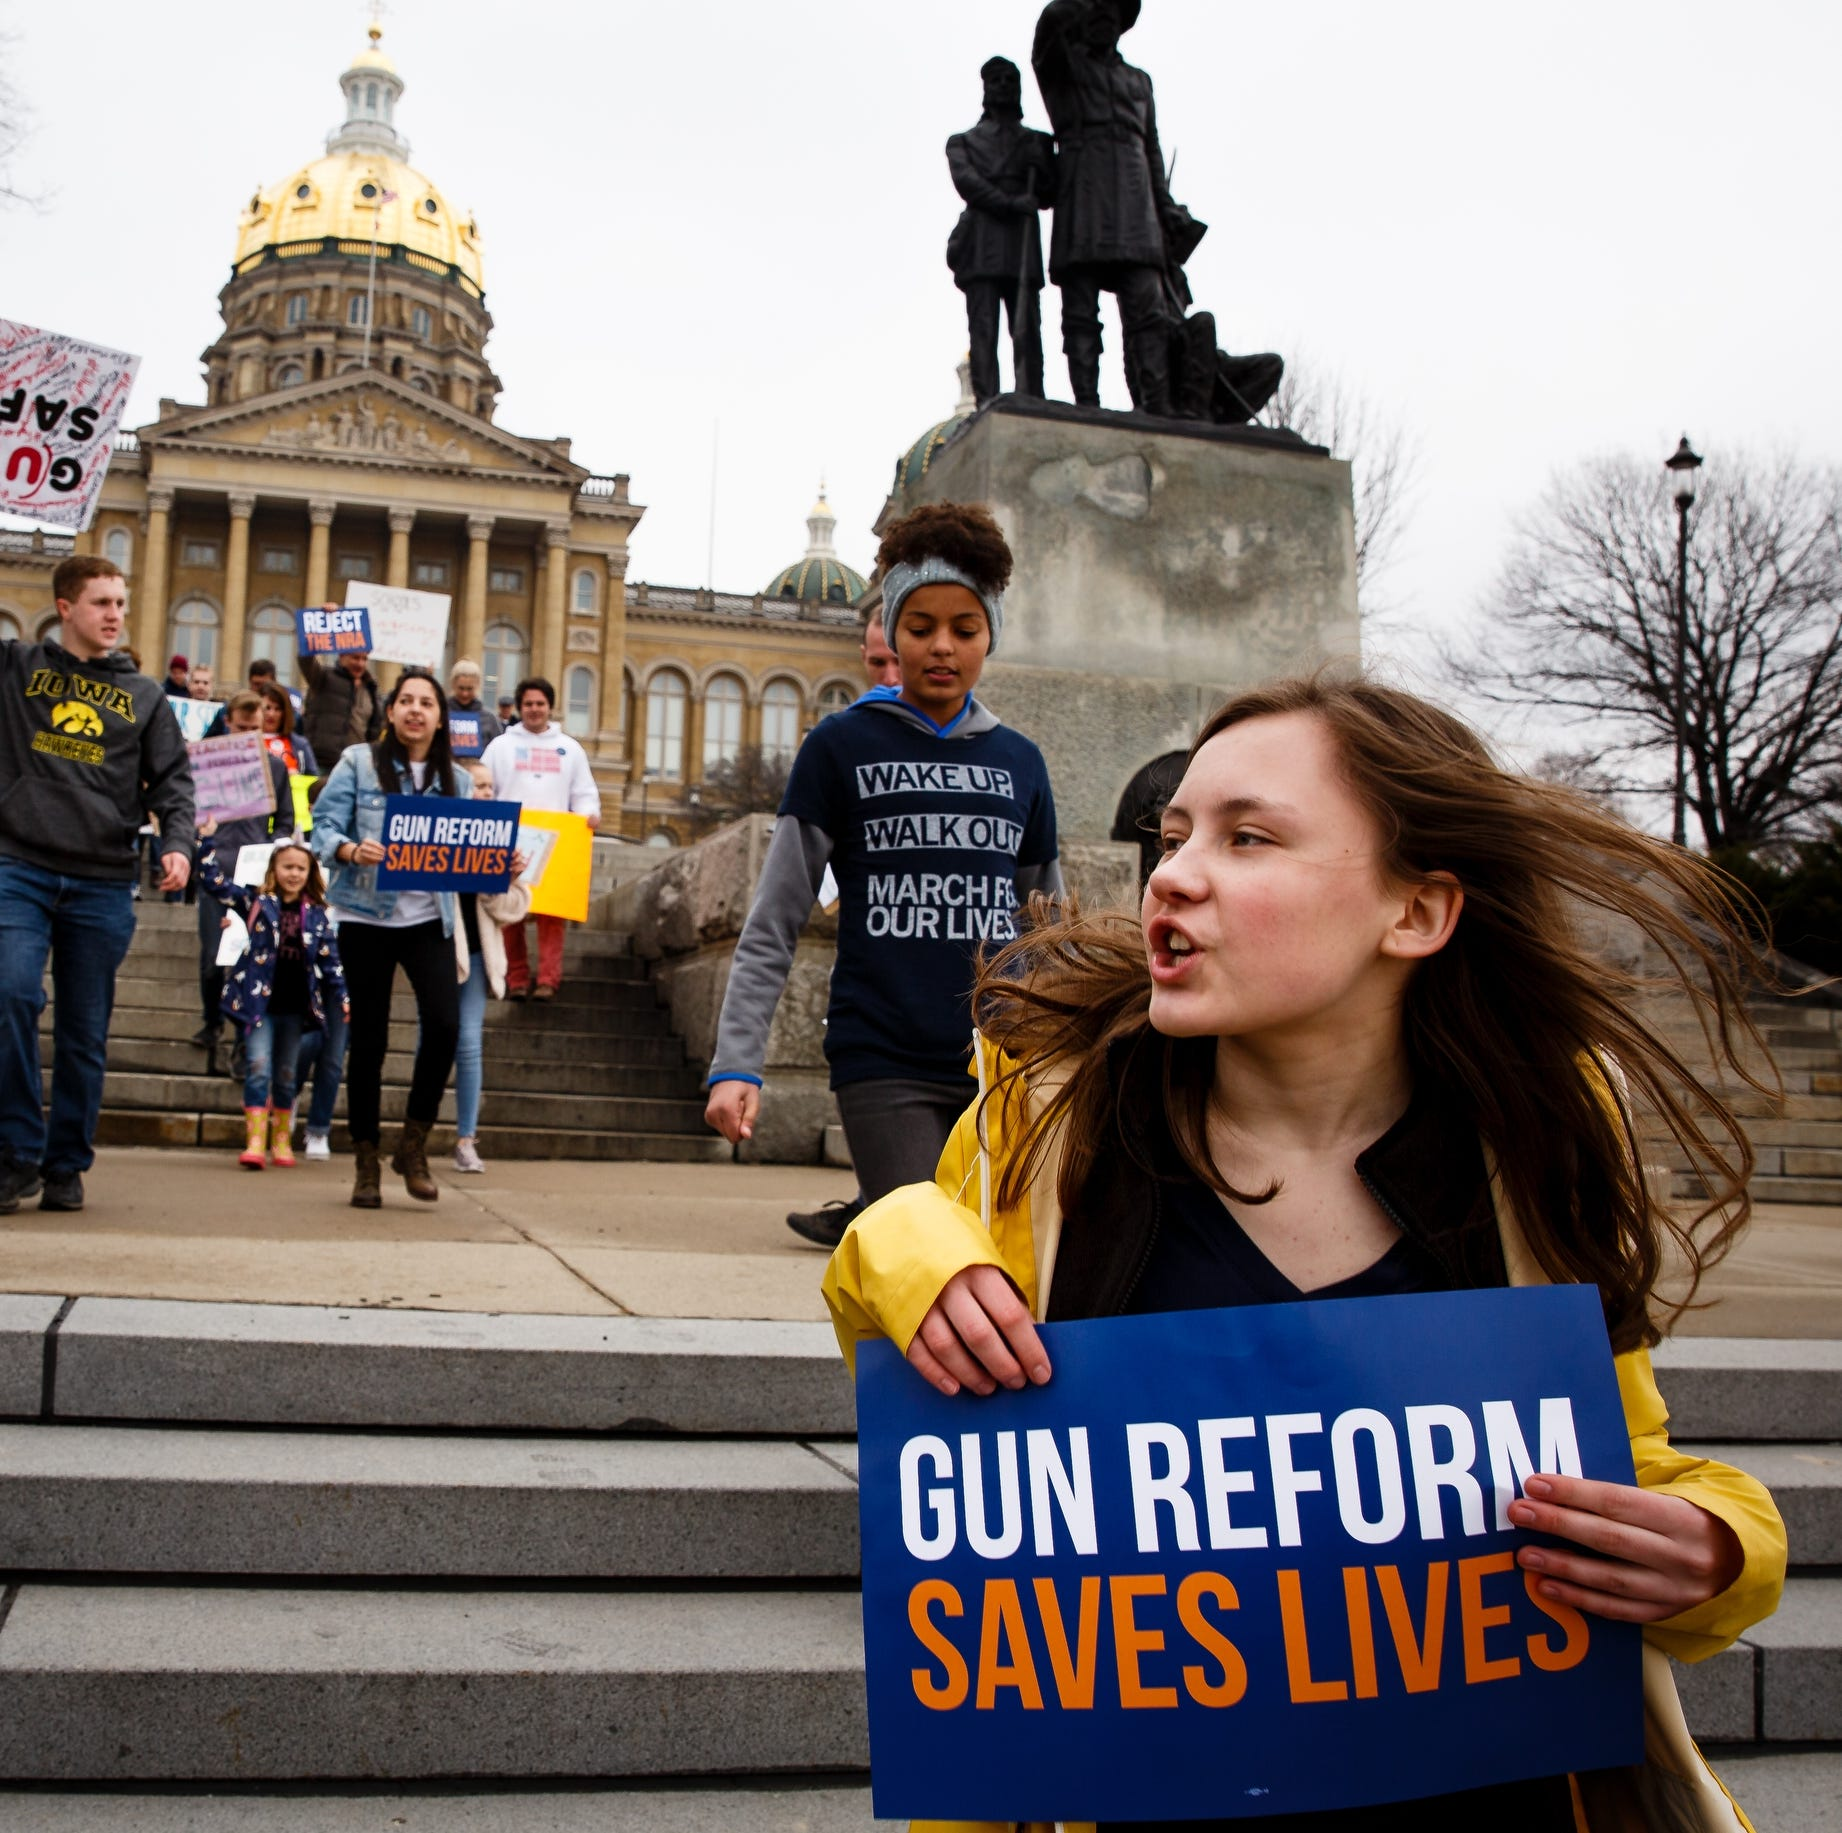 'We are your future, but your future is being traumatized': Des Moines students urge gun reform during March for Our Lives